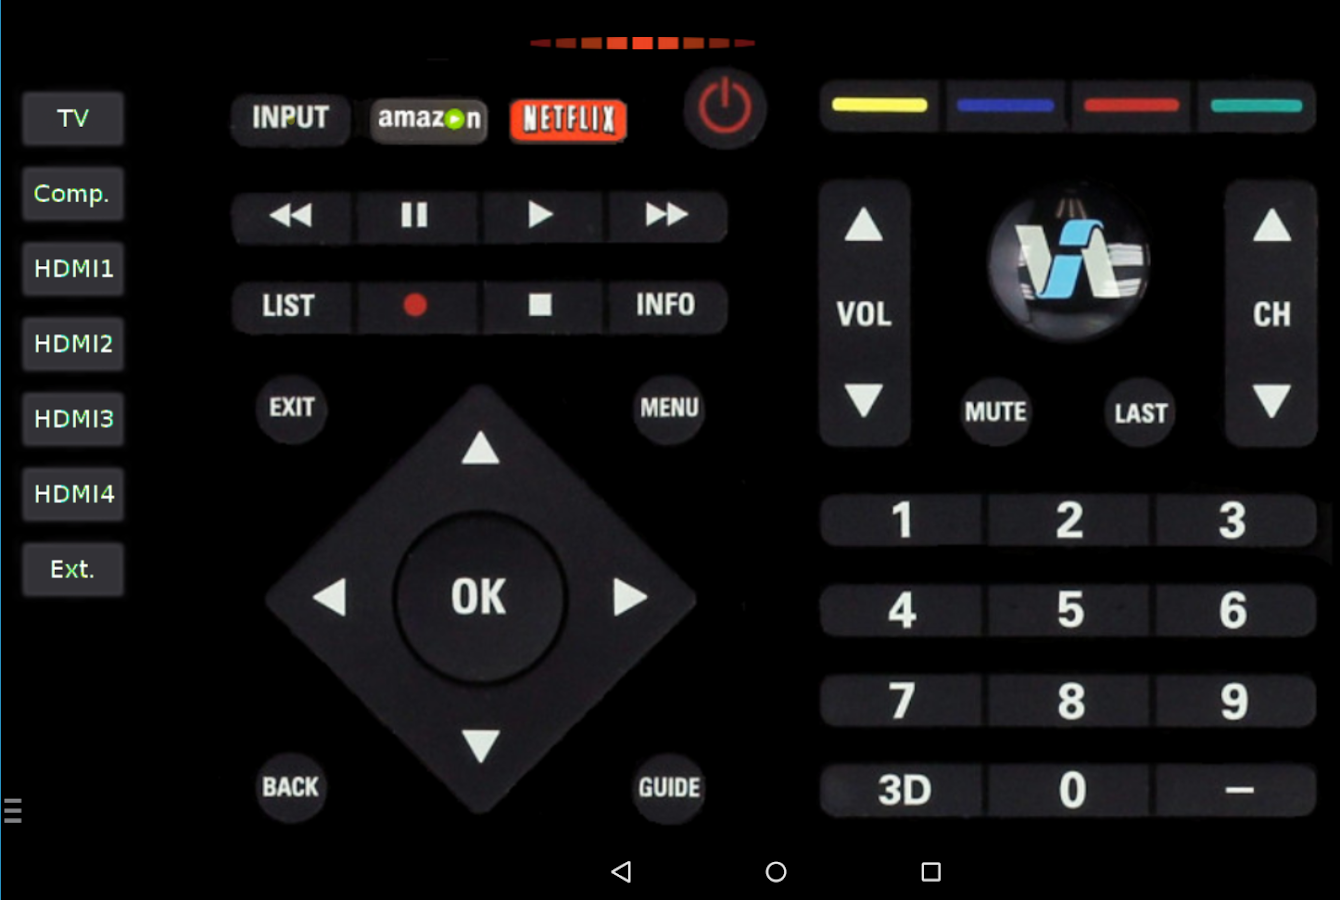 Phone App To Remote Control Android Phone vizremote tv remote control android apps on google play screenshot